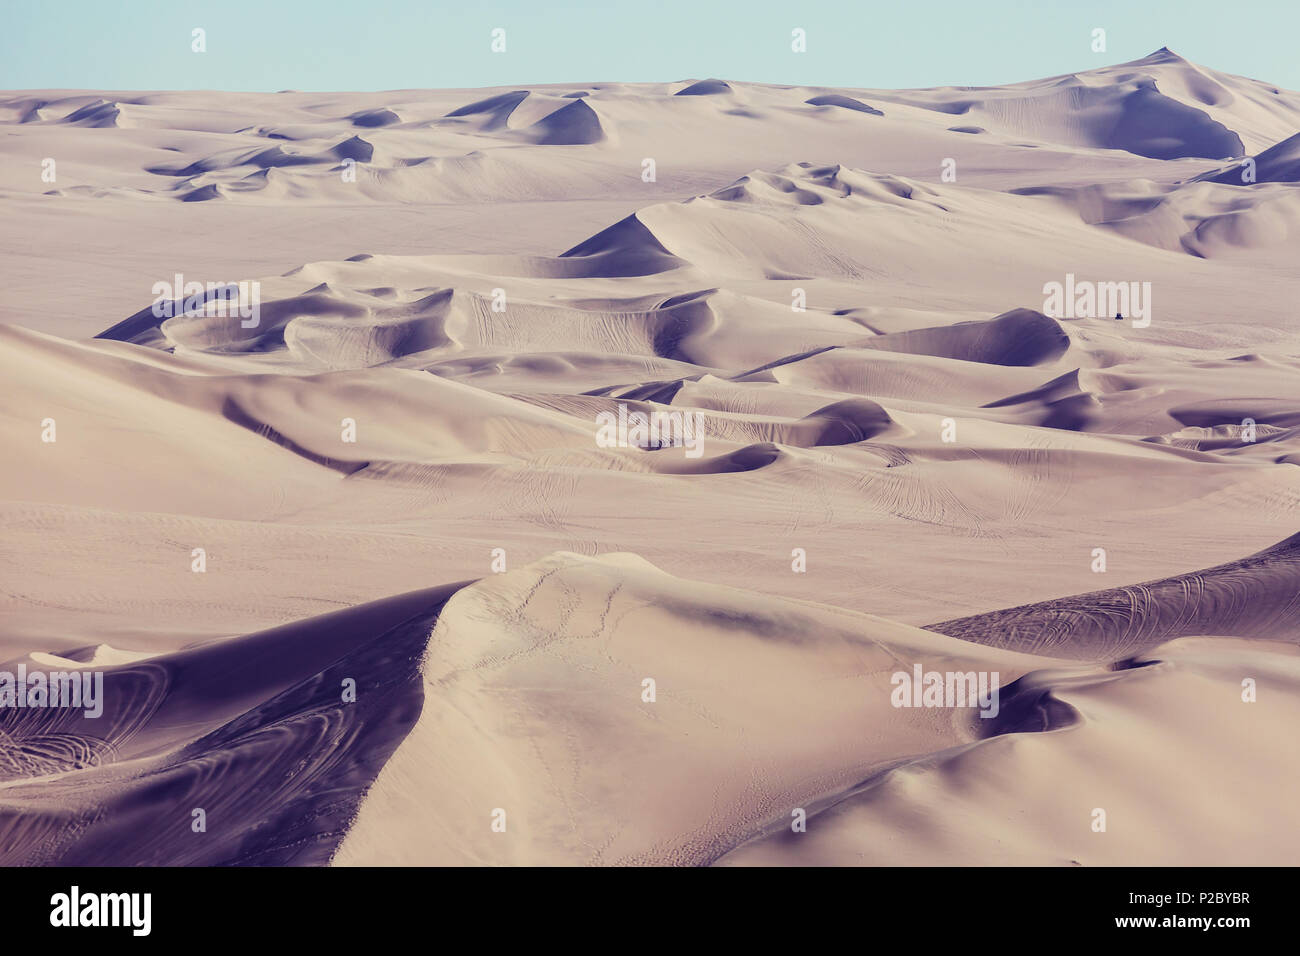 Unspoiled sand dunes in the remote desert Stock Photo